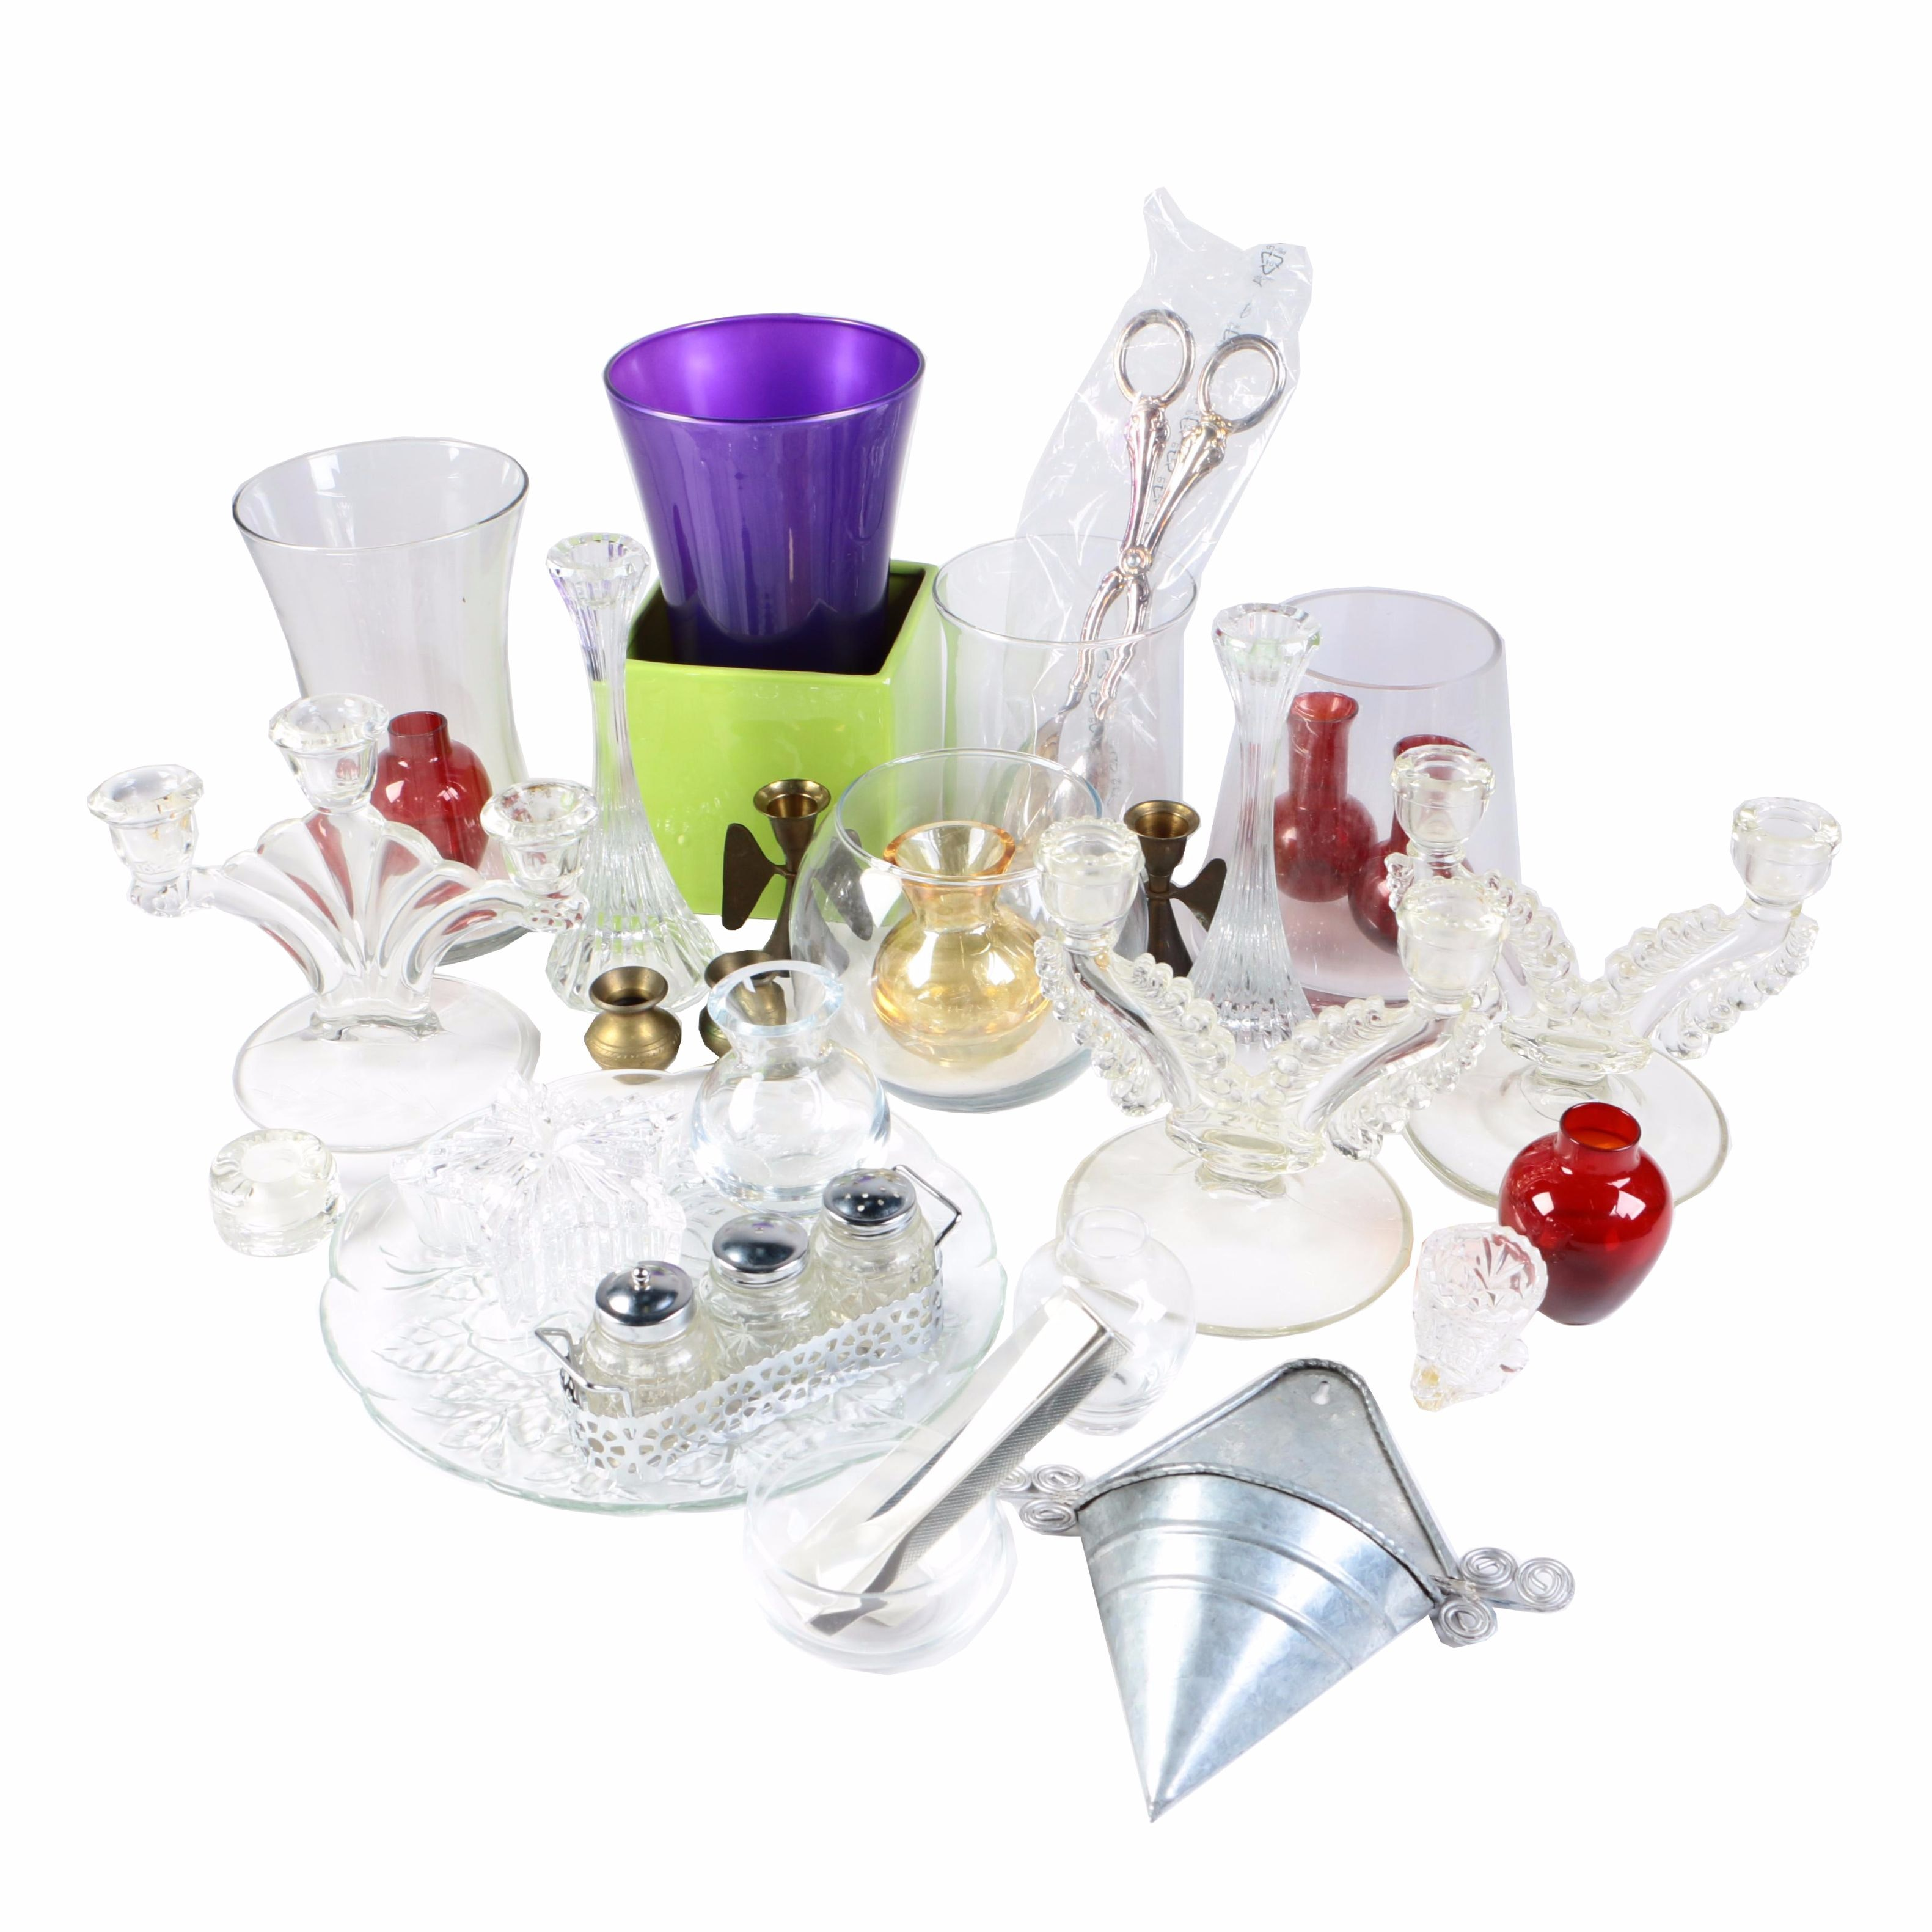 Large Assortment of Home Decor